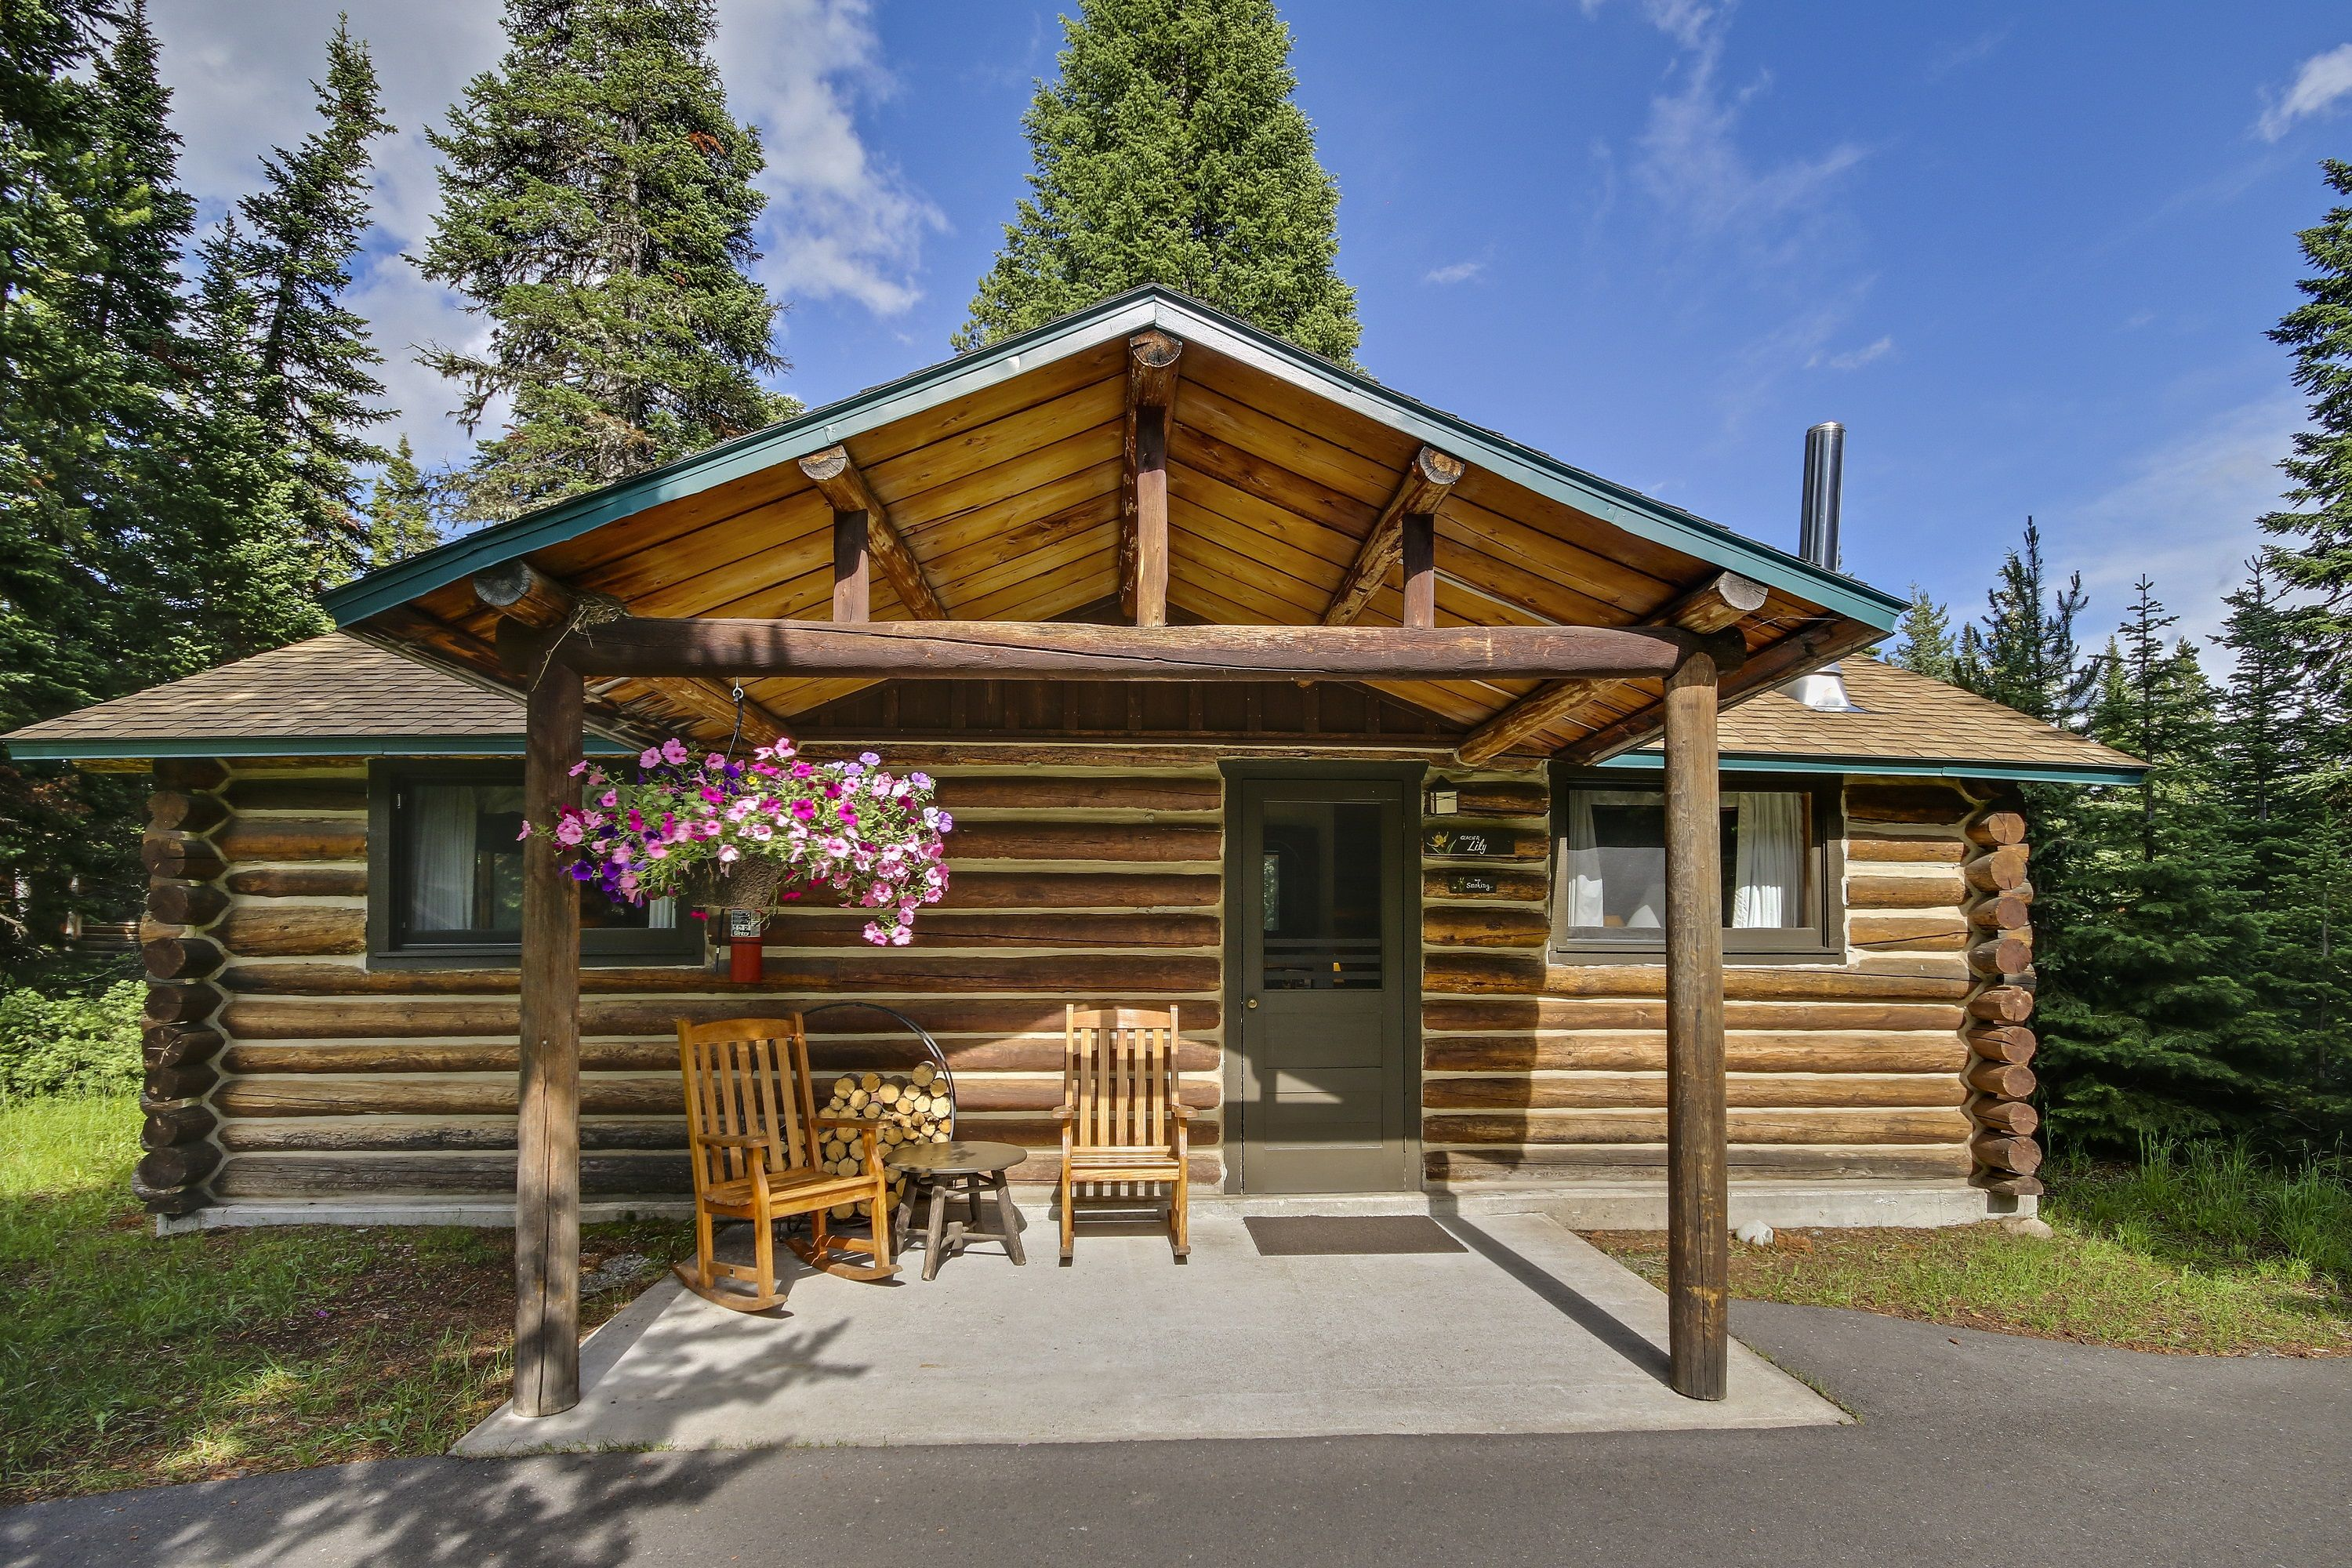 Jenny Lake Lodge Cabins With A Porch And Mountain Or Wooded View In Grand Teton National Park Wyoming Lake Lodge Tetons Grand Tetons